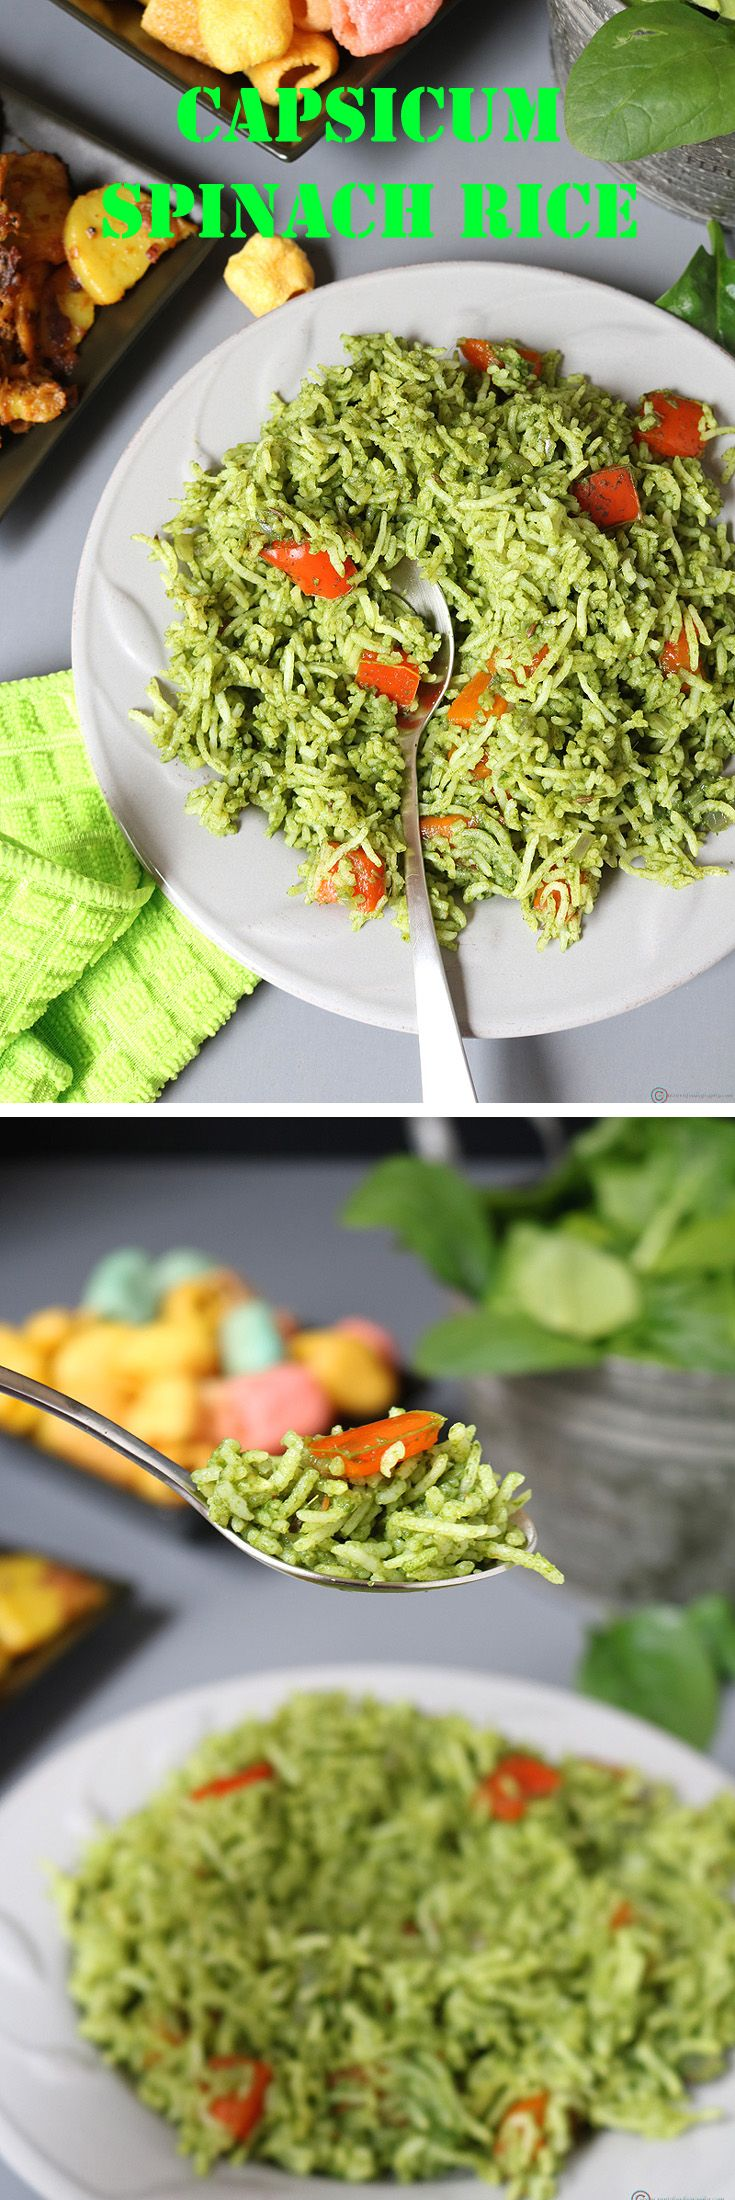 A quick, easy and healthy Capsicum Palak (Spinach) Rice, perfect to pack for your lunchbox.